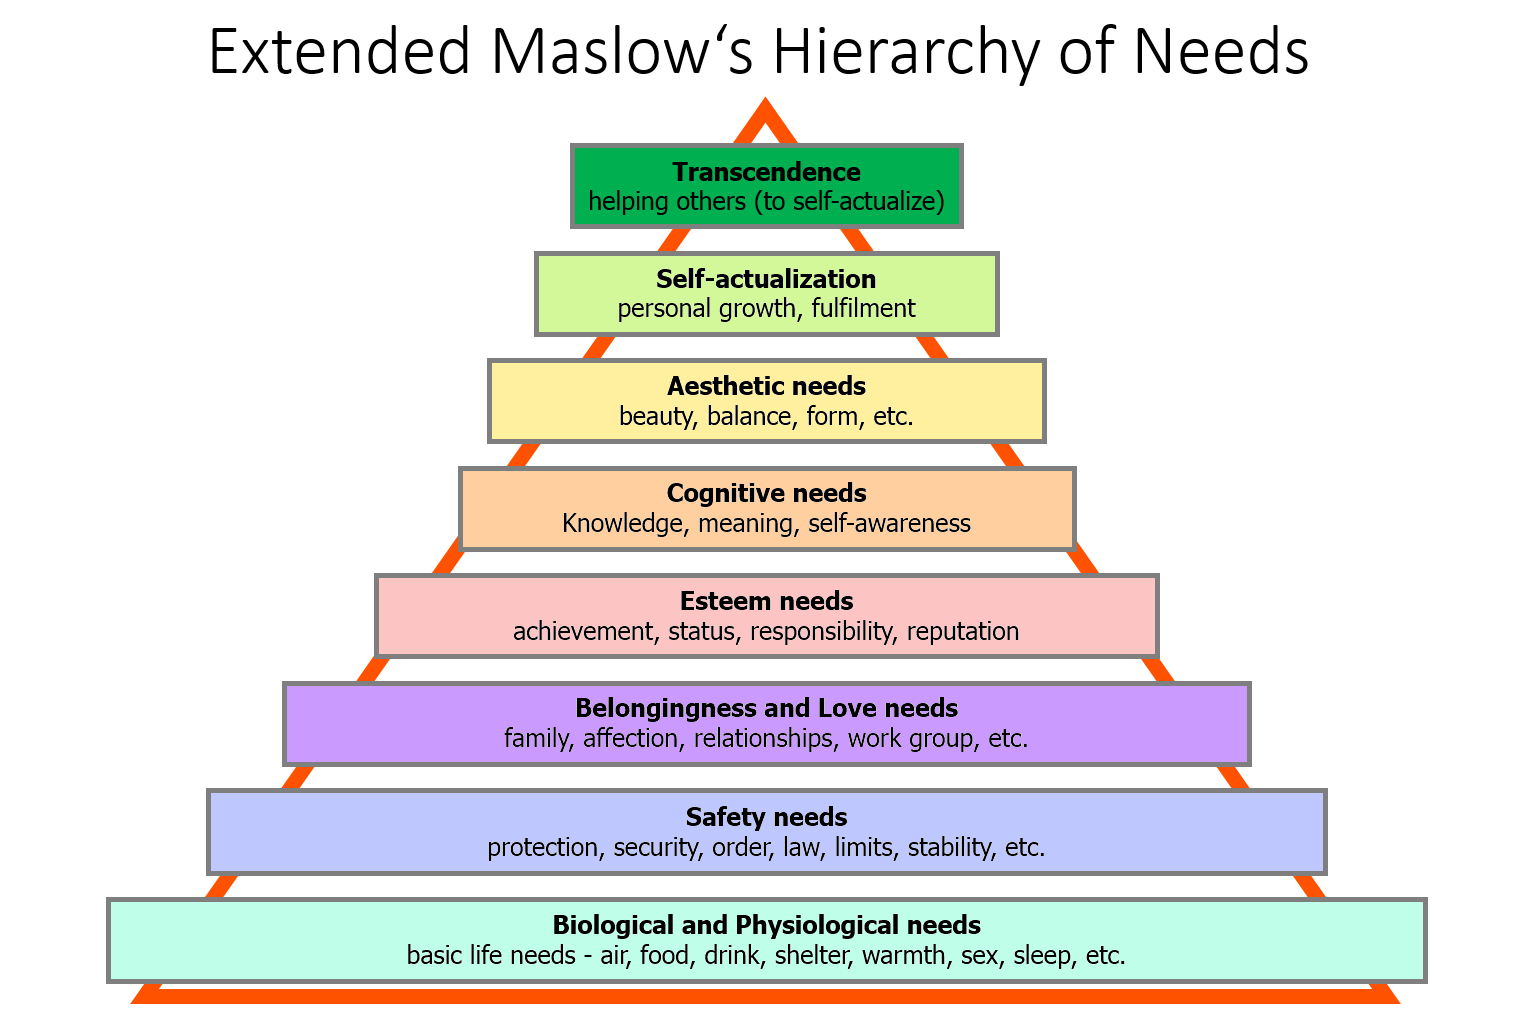 mctoy maslow s hierarchy of needs Maslow's hierarchy of needs is over 60 years old, but it's still a valuable workplace tool for human resource managers to understand and motivate staff.